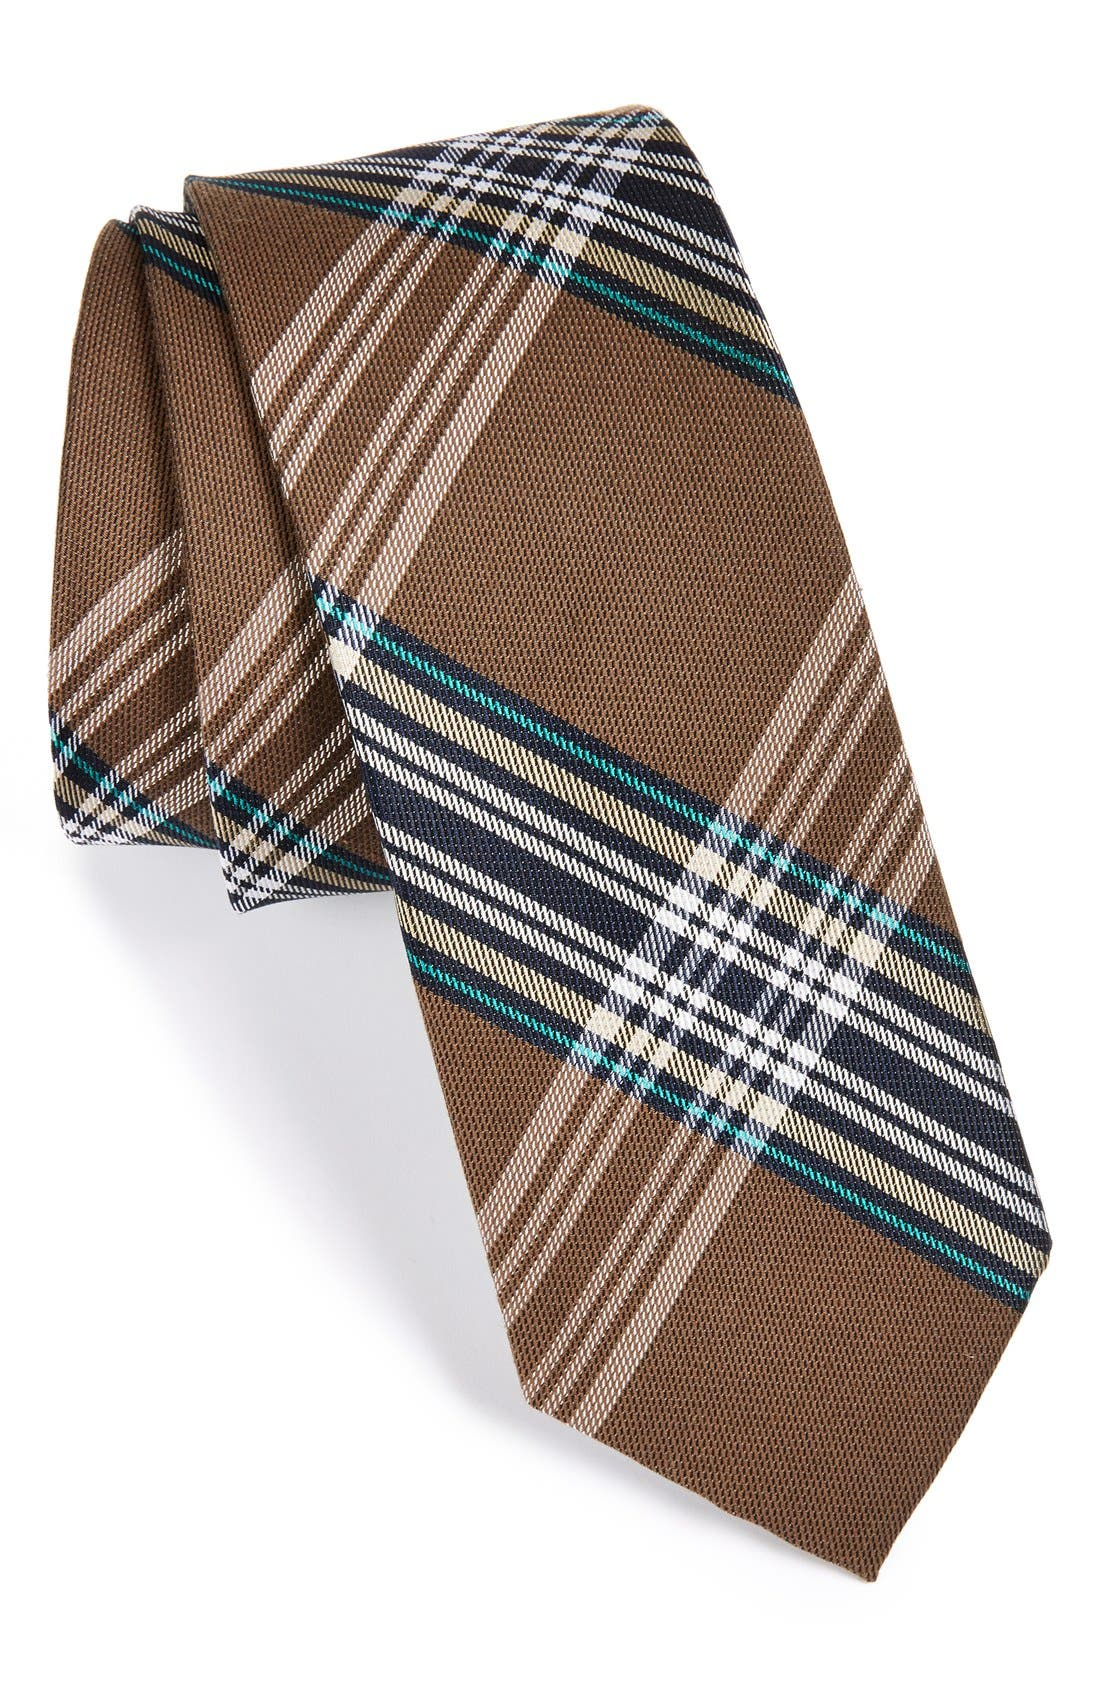 'Delores' Plaid Silk & Cotton Tie,                         Main,                         color, 200